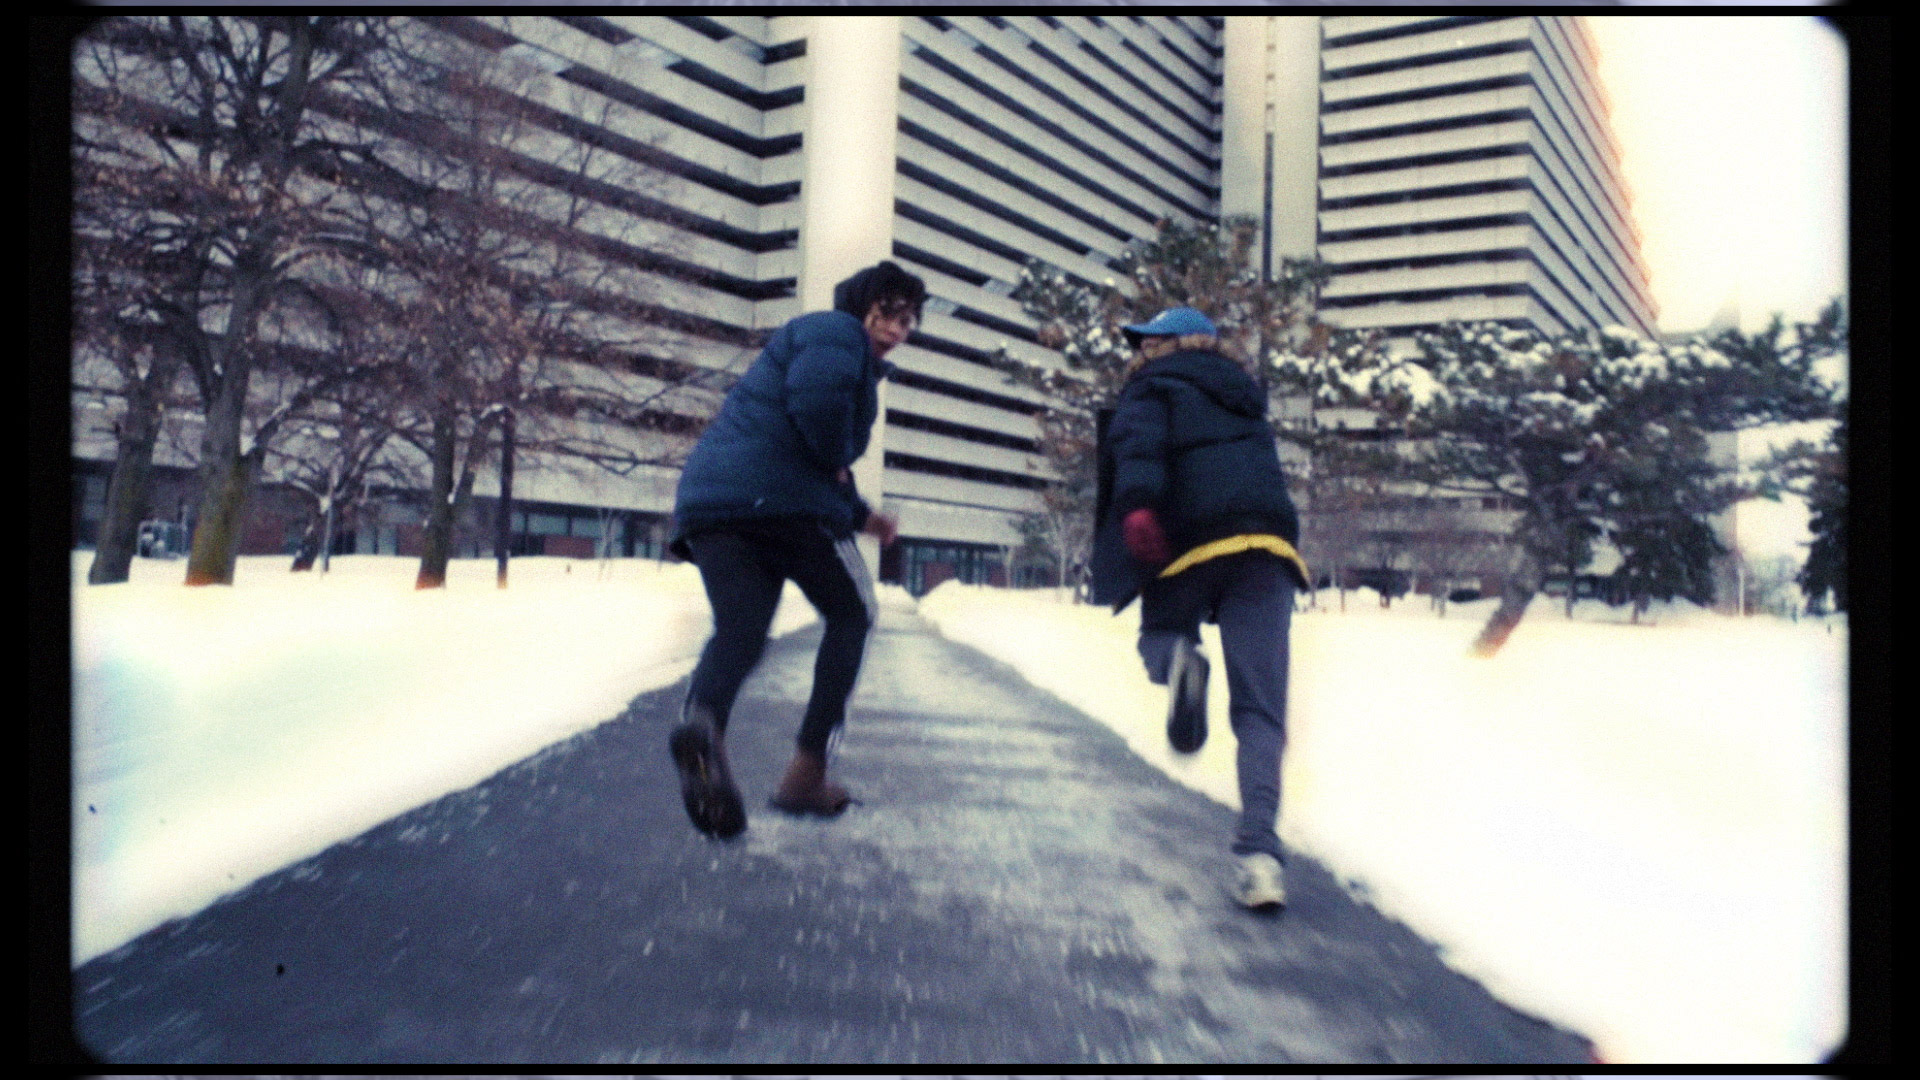 rapper Zach Zoya and friend running on pathway in middle of garden covered in snow in music video Who Dat filmed by Les Gamins